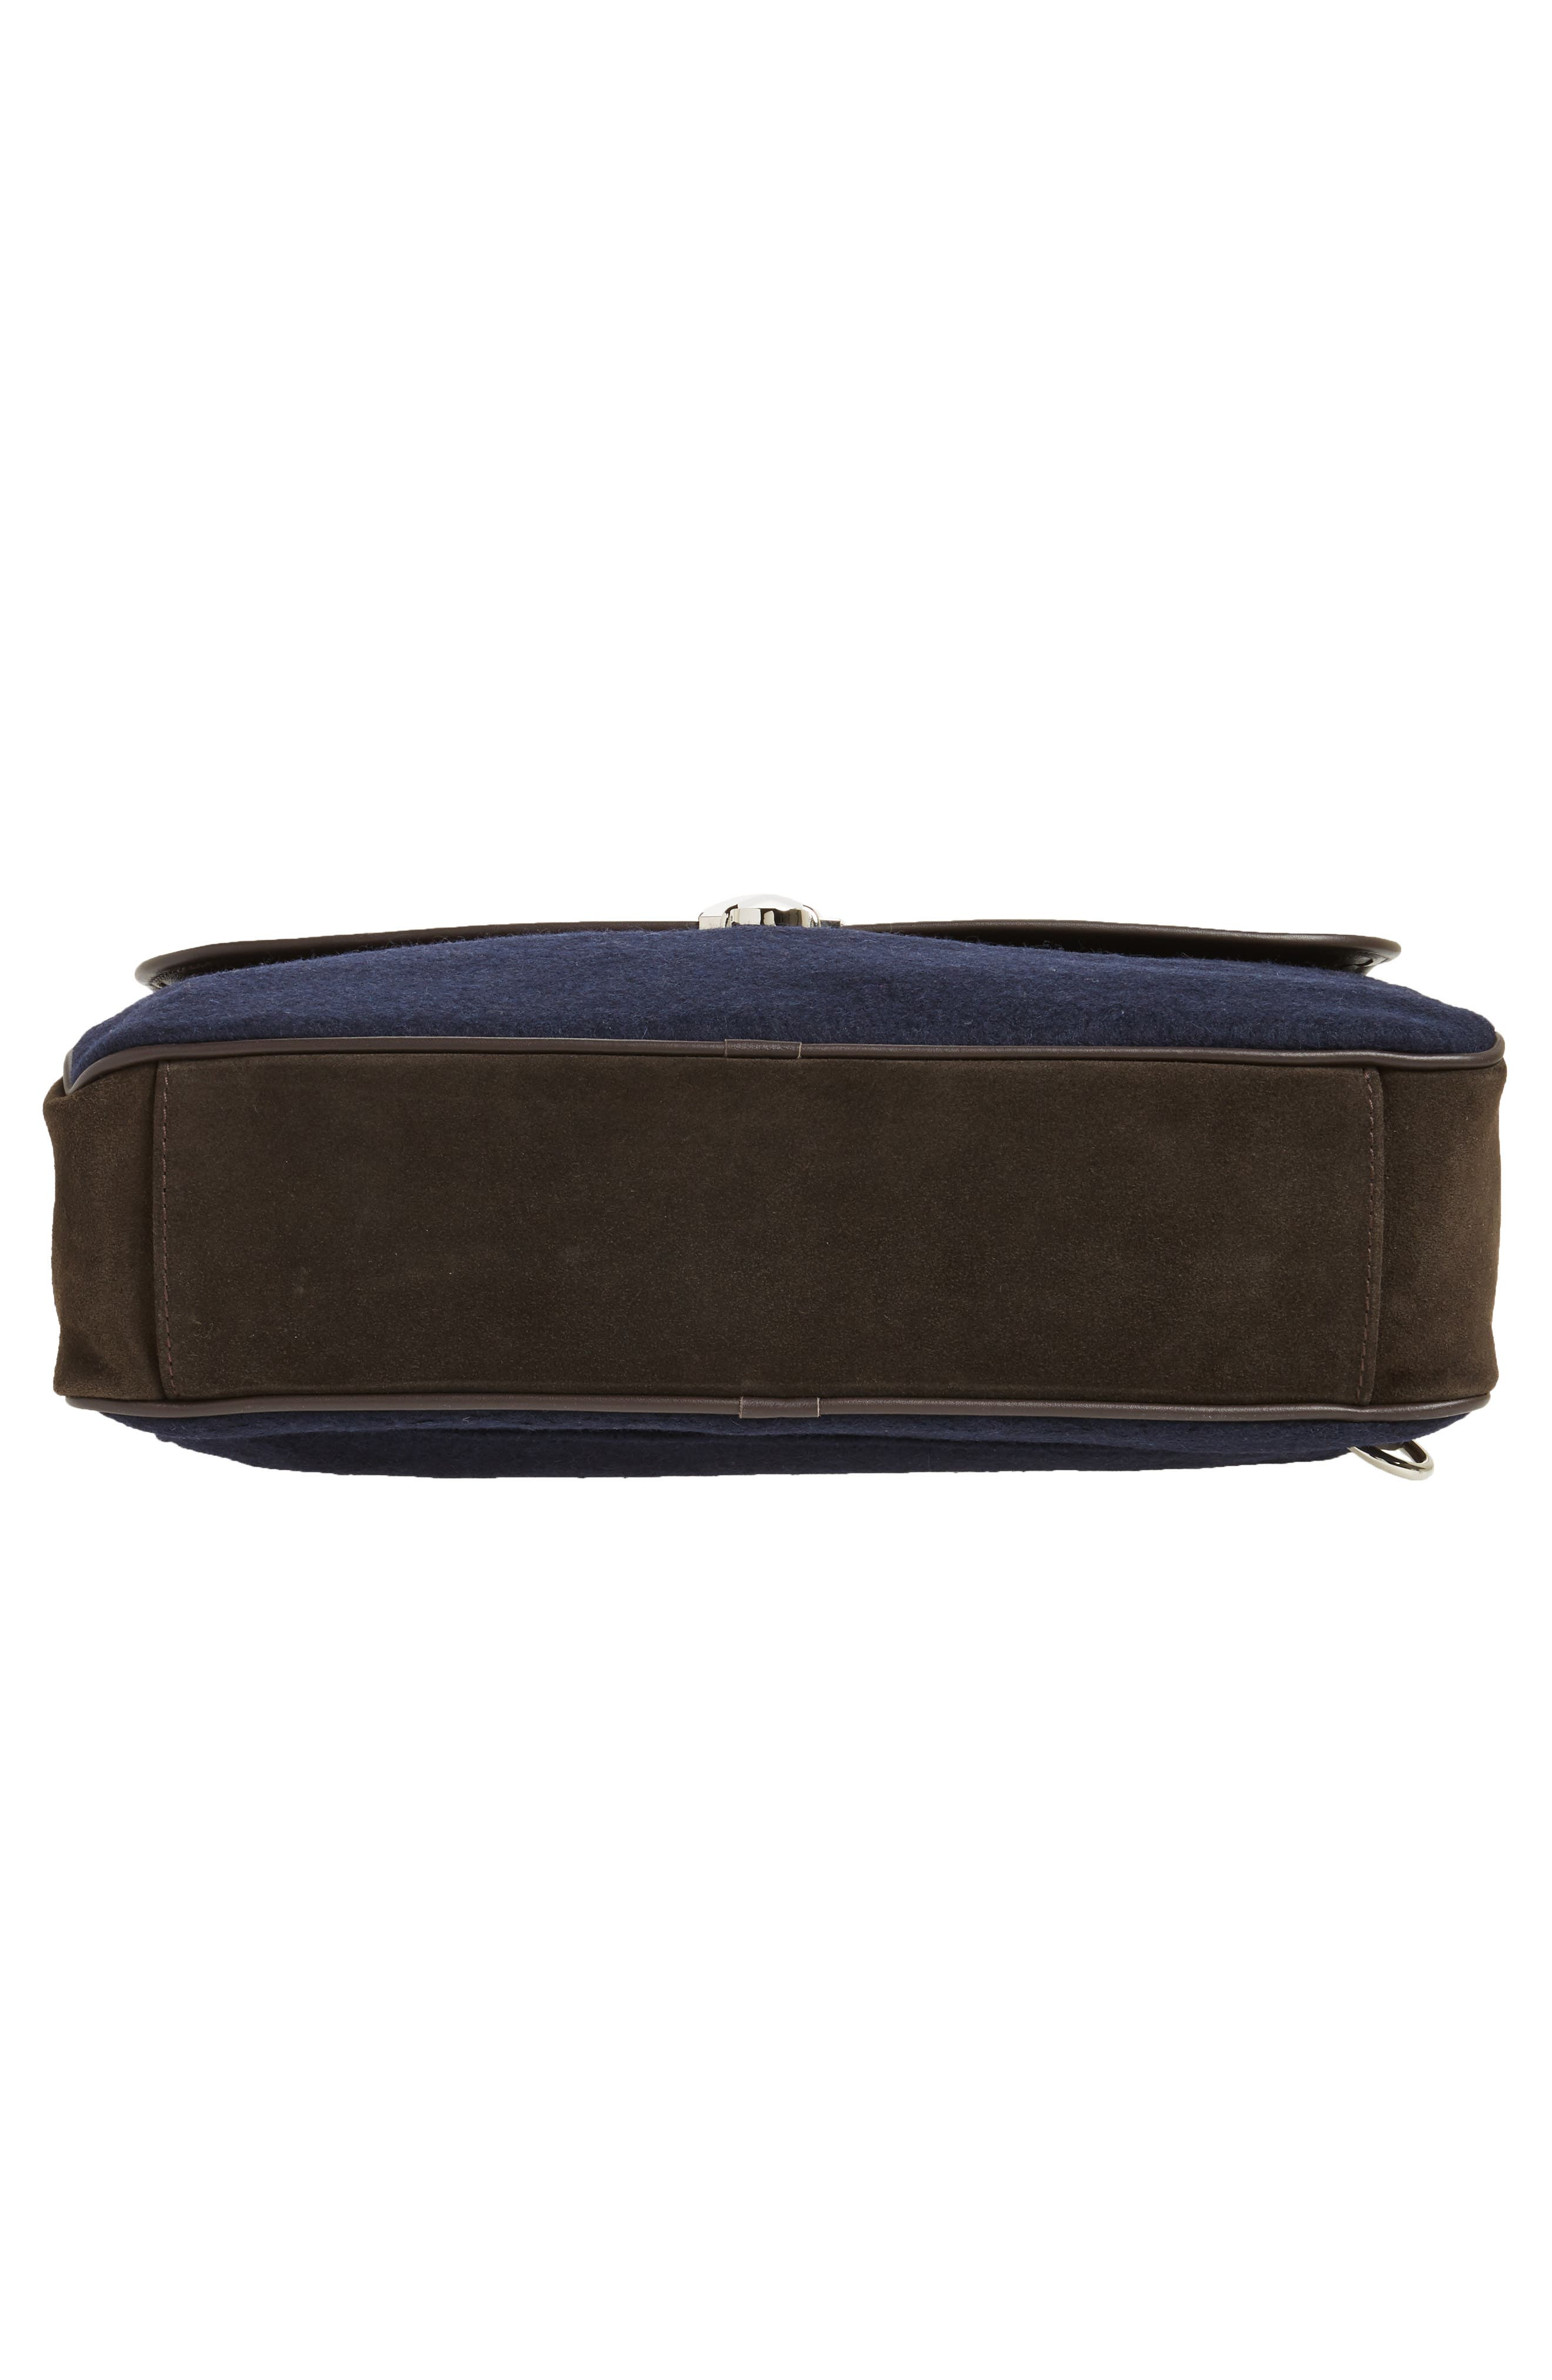 Leather & Wool Convertible Briefcase,                             Alternate thumbnail 6, color,                             205